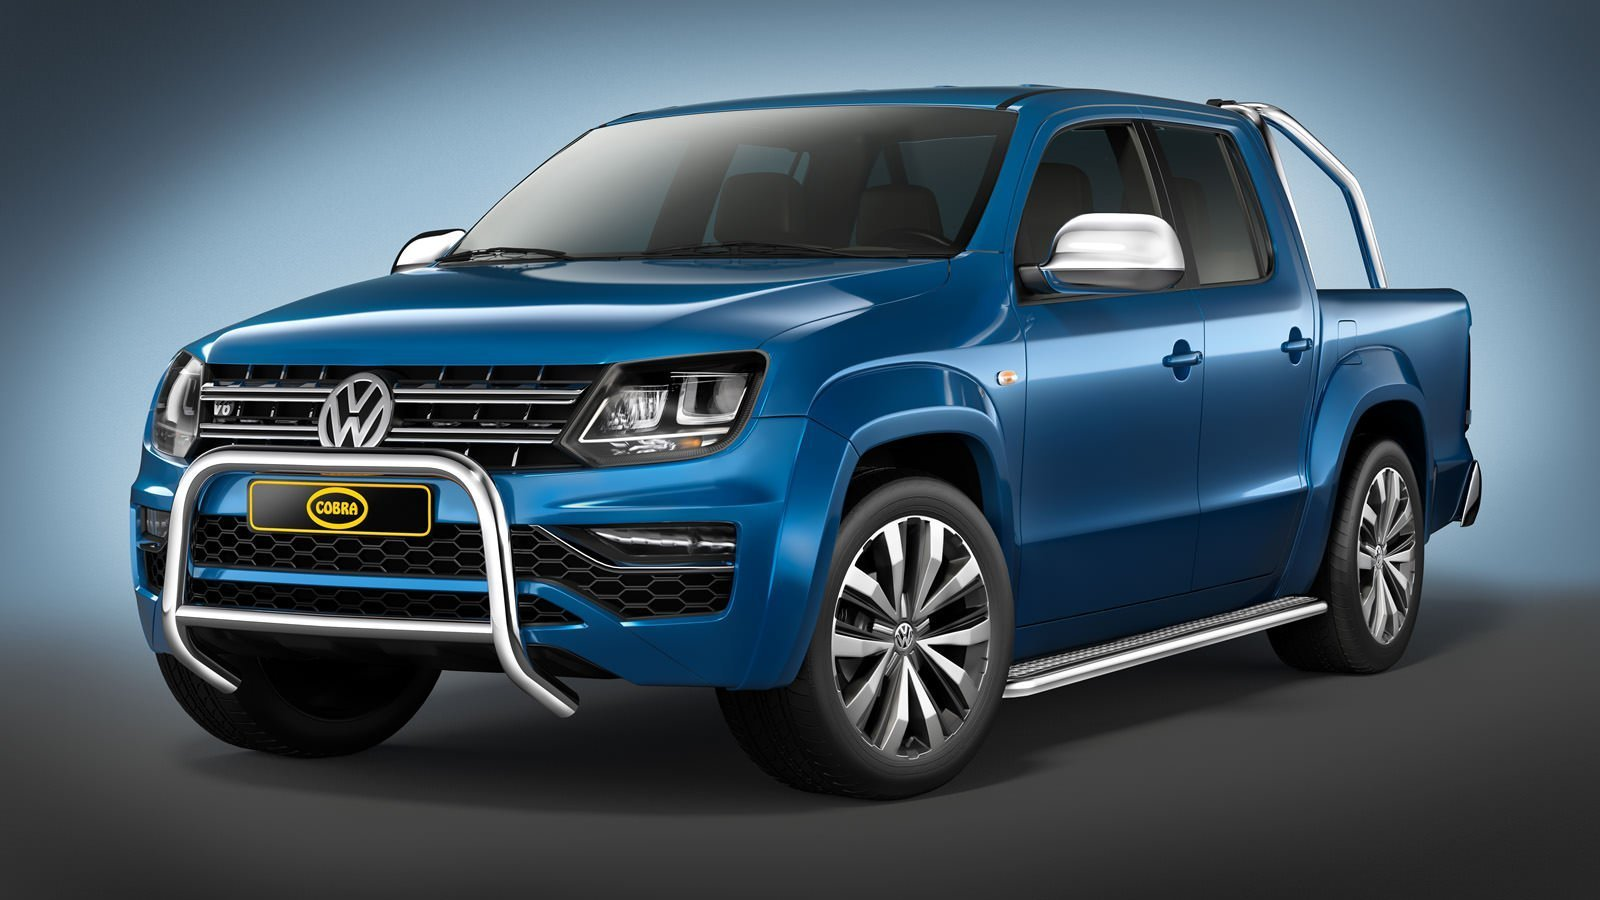 volkswagen amarok eu front guard 2016 cobra amarok. Black Bedroom Furniture Sets. Home Design Ideas